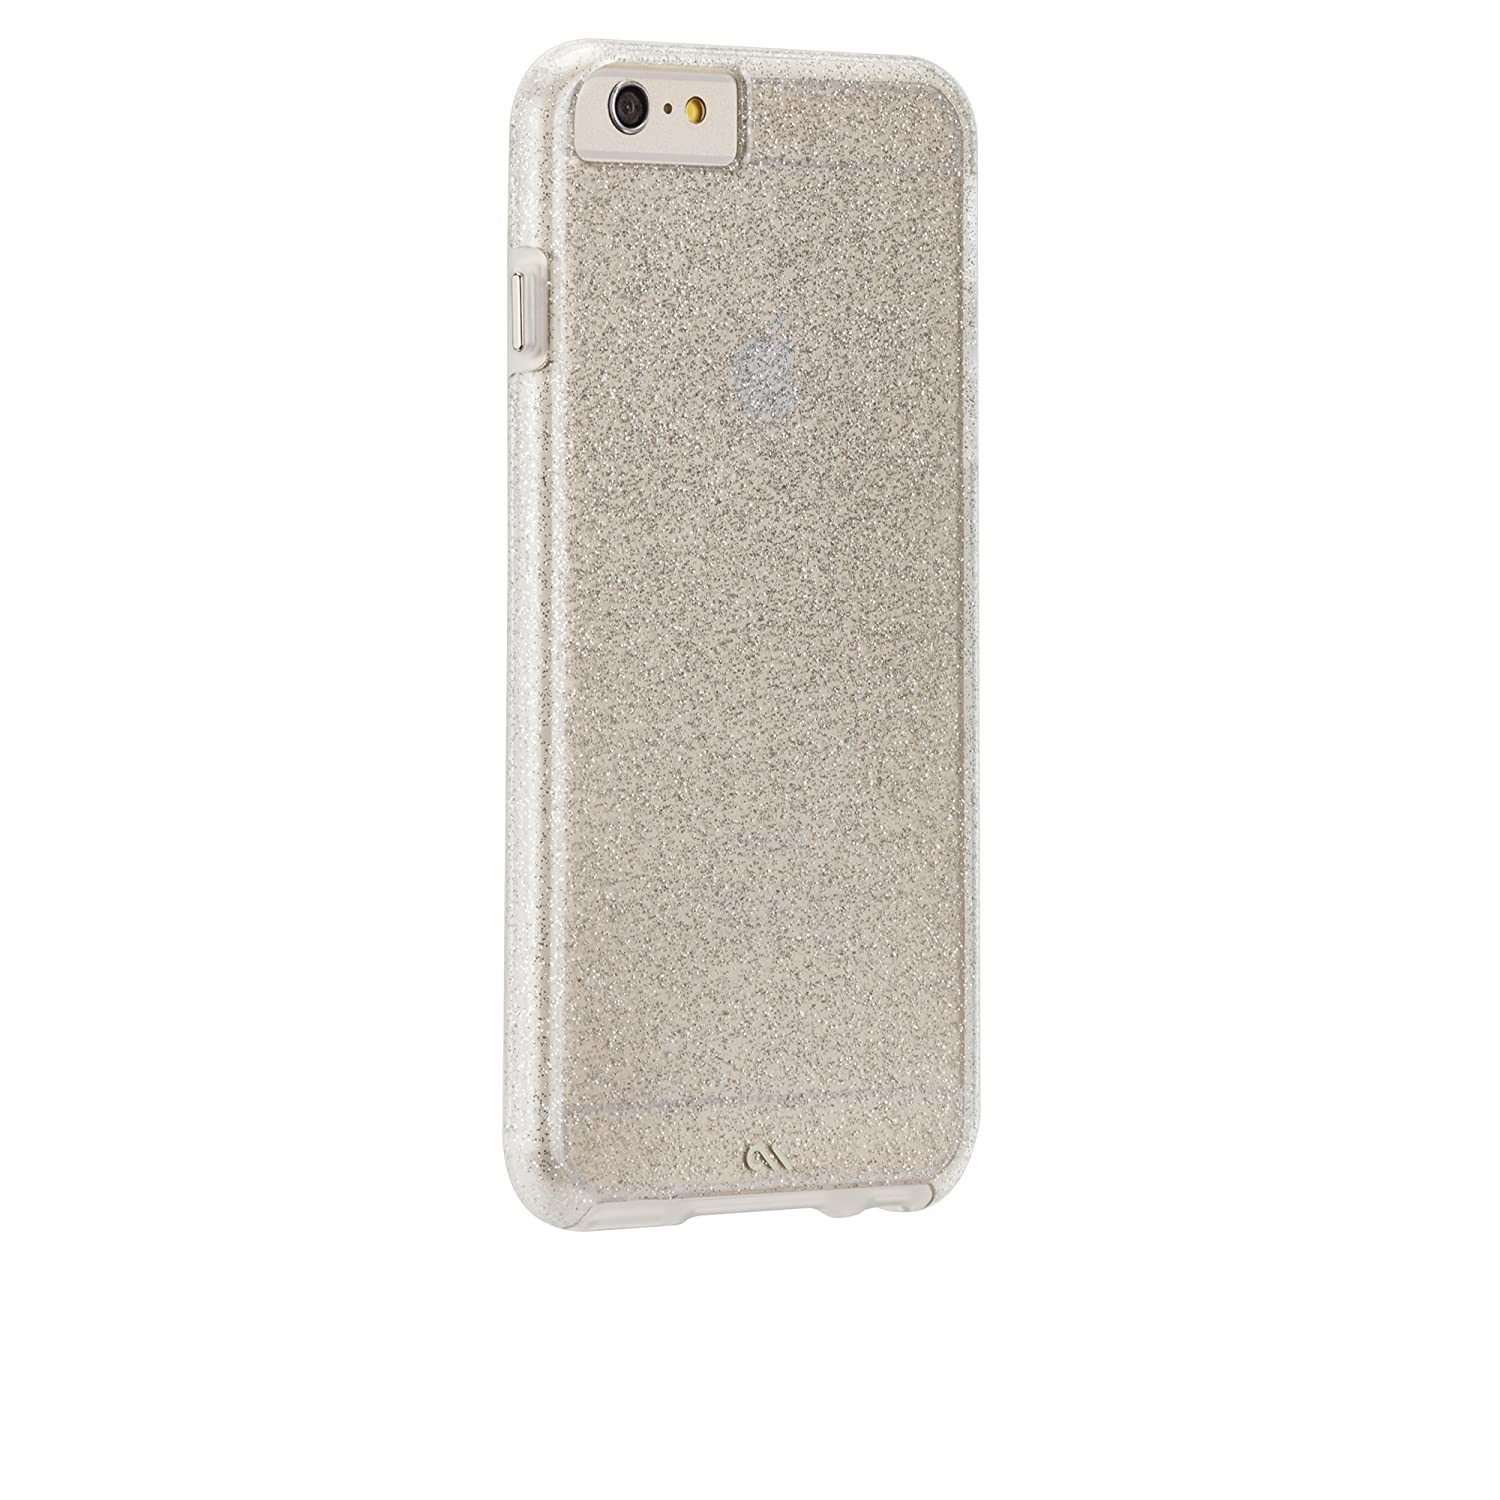 Case-Mate iPhone 6 Case - NAKED TOUGH - Clear - Slim Protective Design - Apple iPhone 6 / iPhone 6s - Clear CM031382